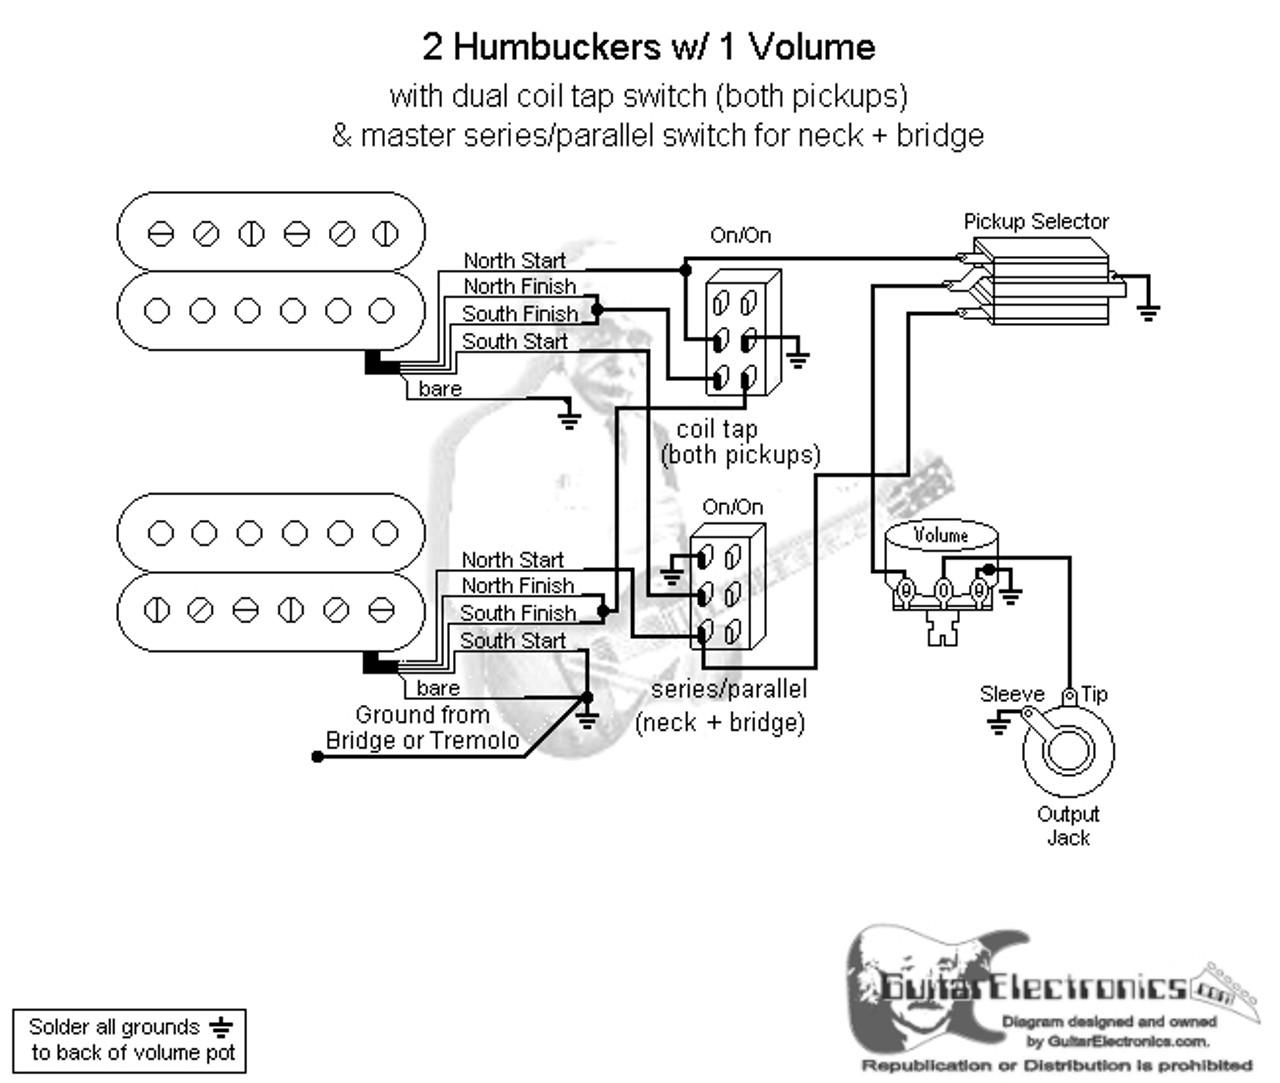 split coil wiring for toggle switch diagram wiring diagram split coil wiring for toggle switch diagram [ 1280 x 1083 Pixel ]